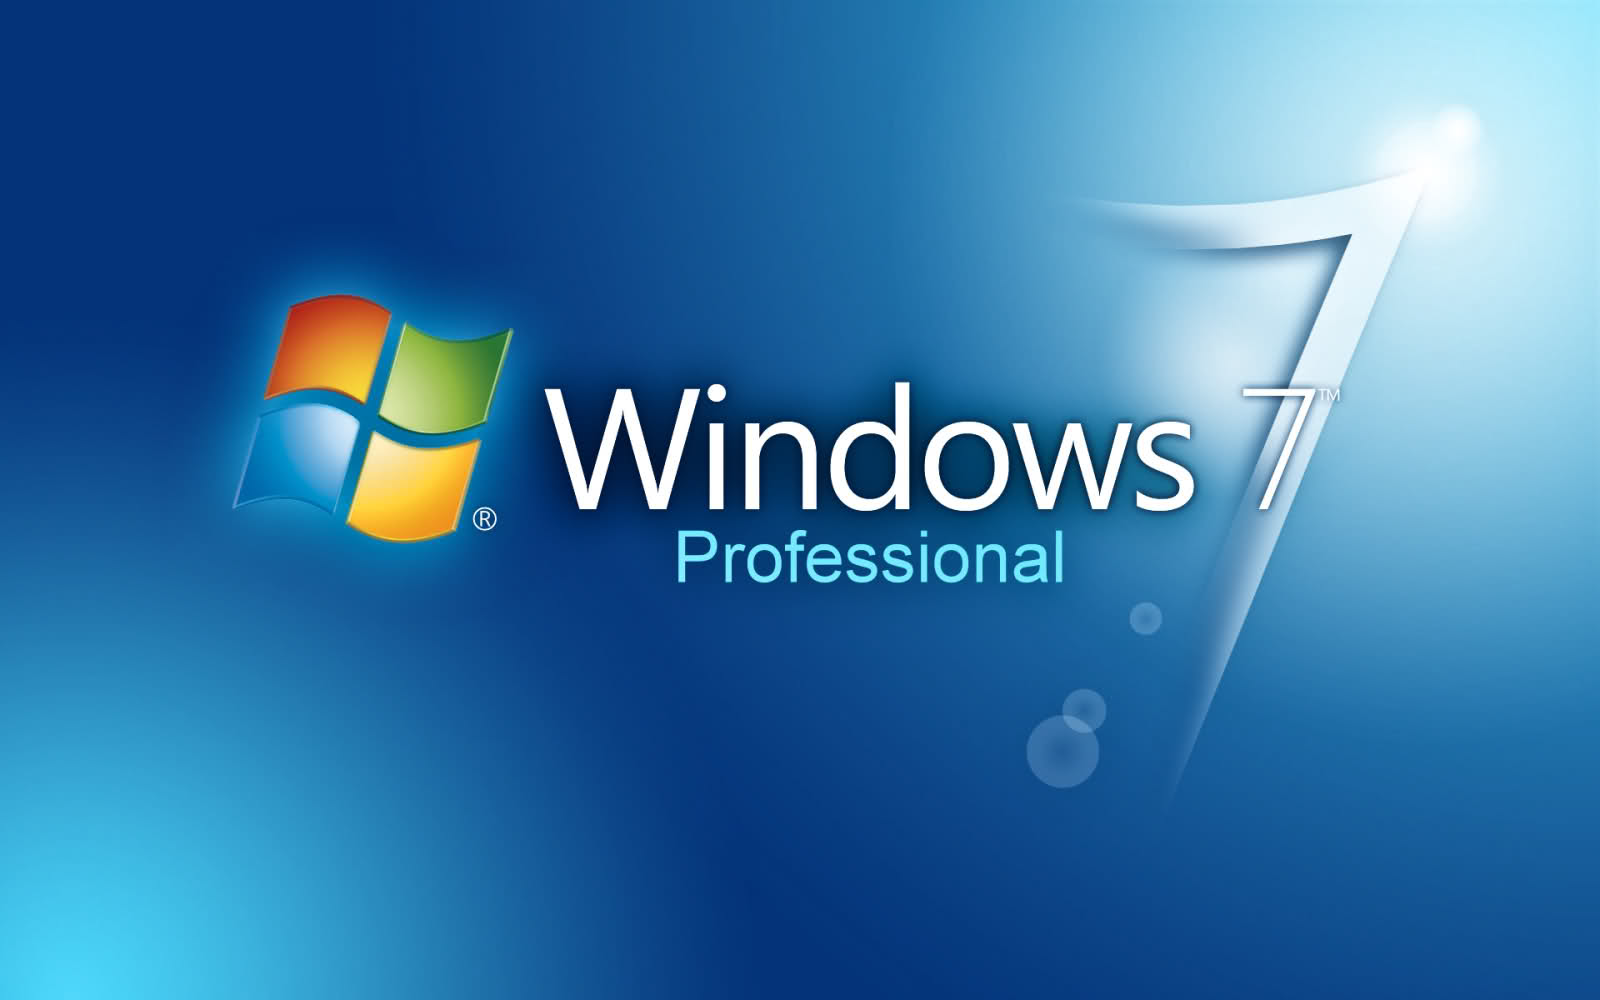 windows 7 professional iso image download